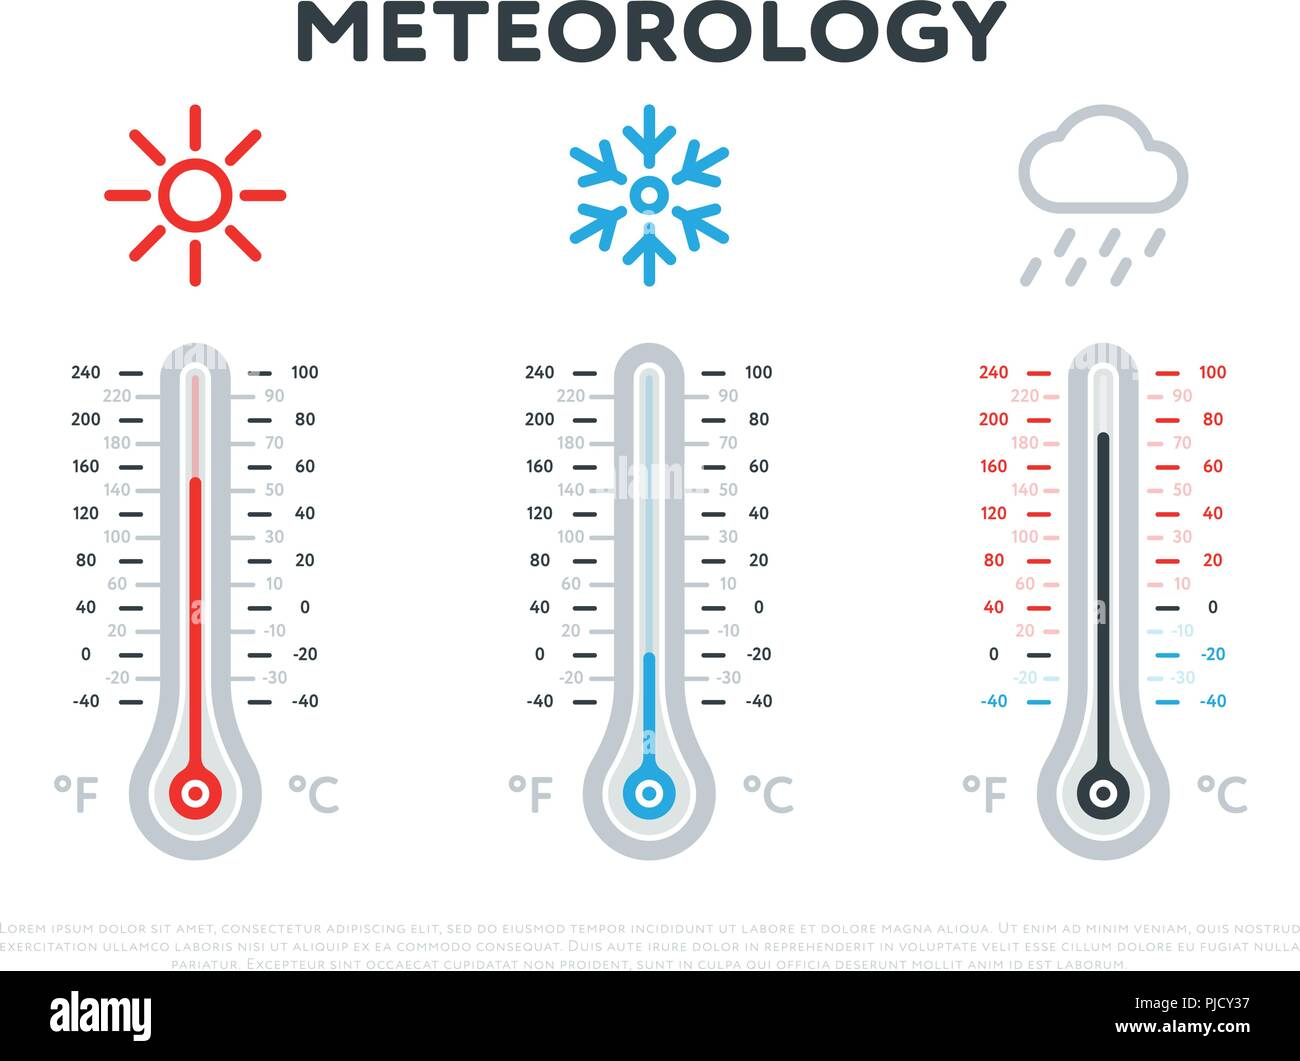 hot and cold meteorology thermometers - Stock Vector